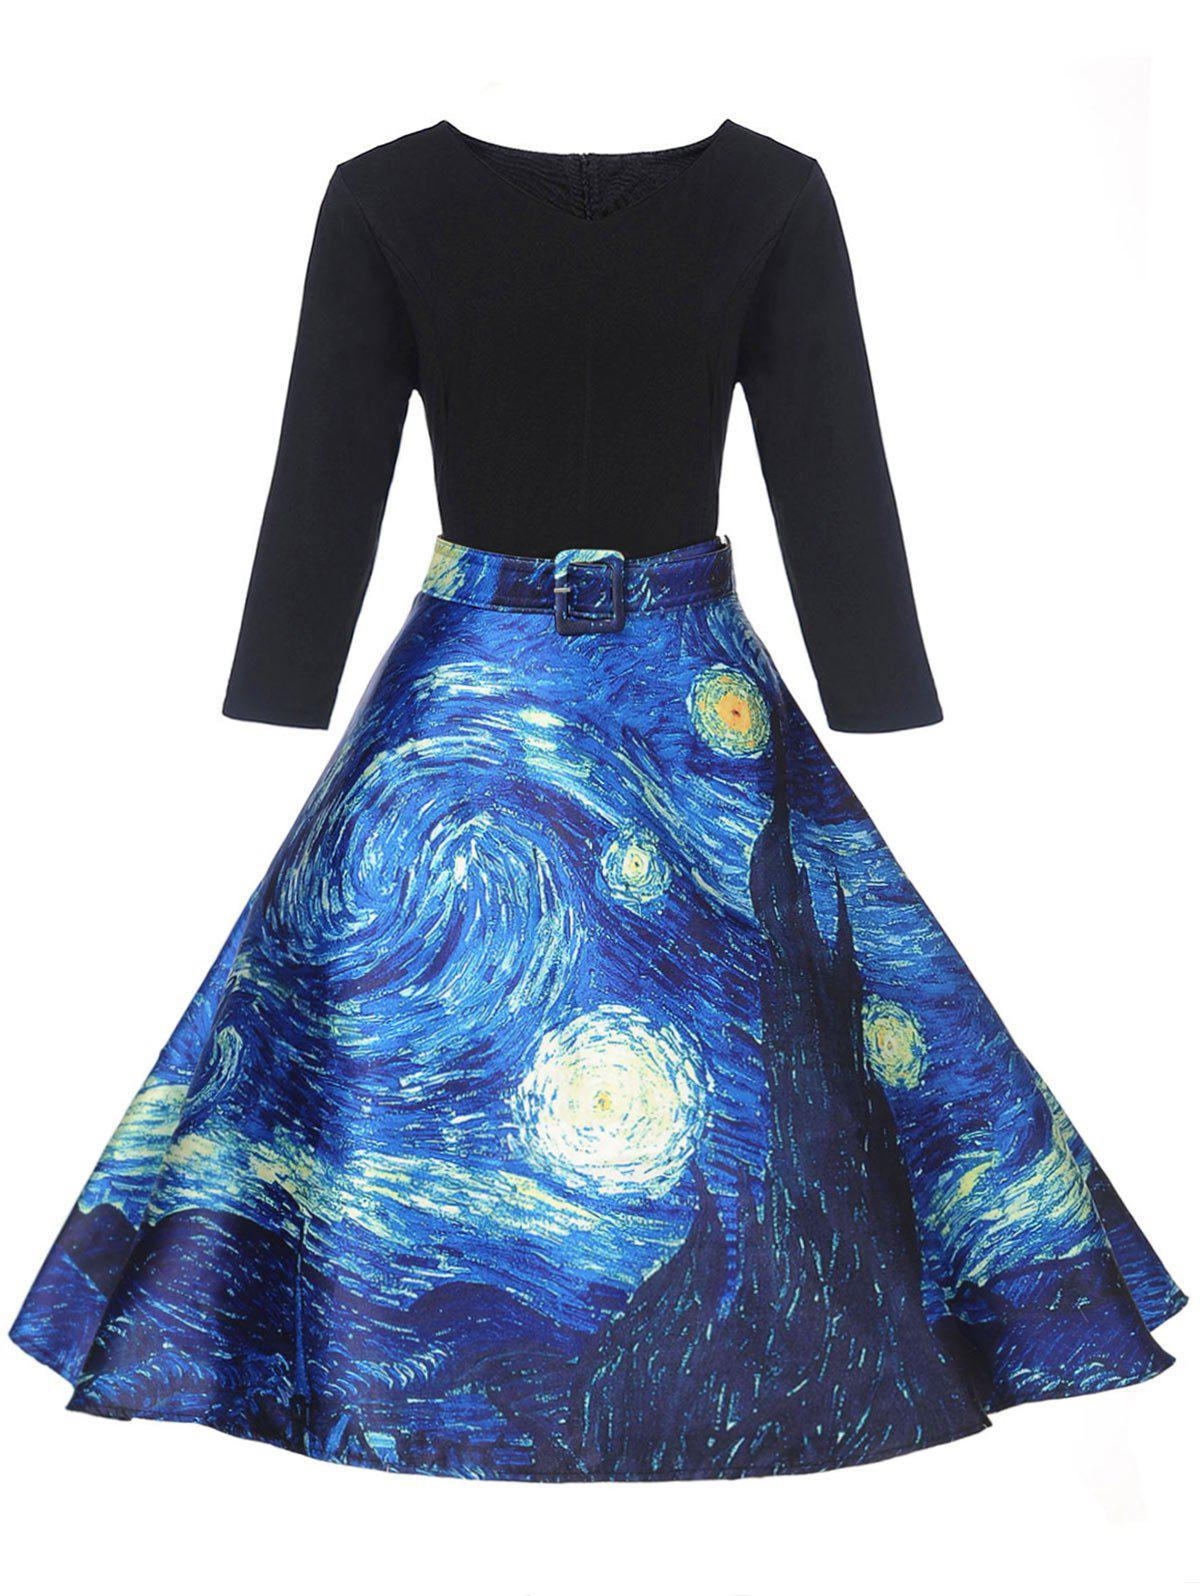 Retro Starry Sky Print Pin Up Dress - BLACK XL